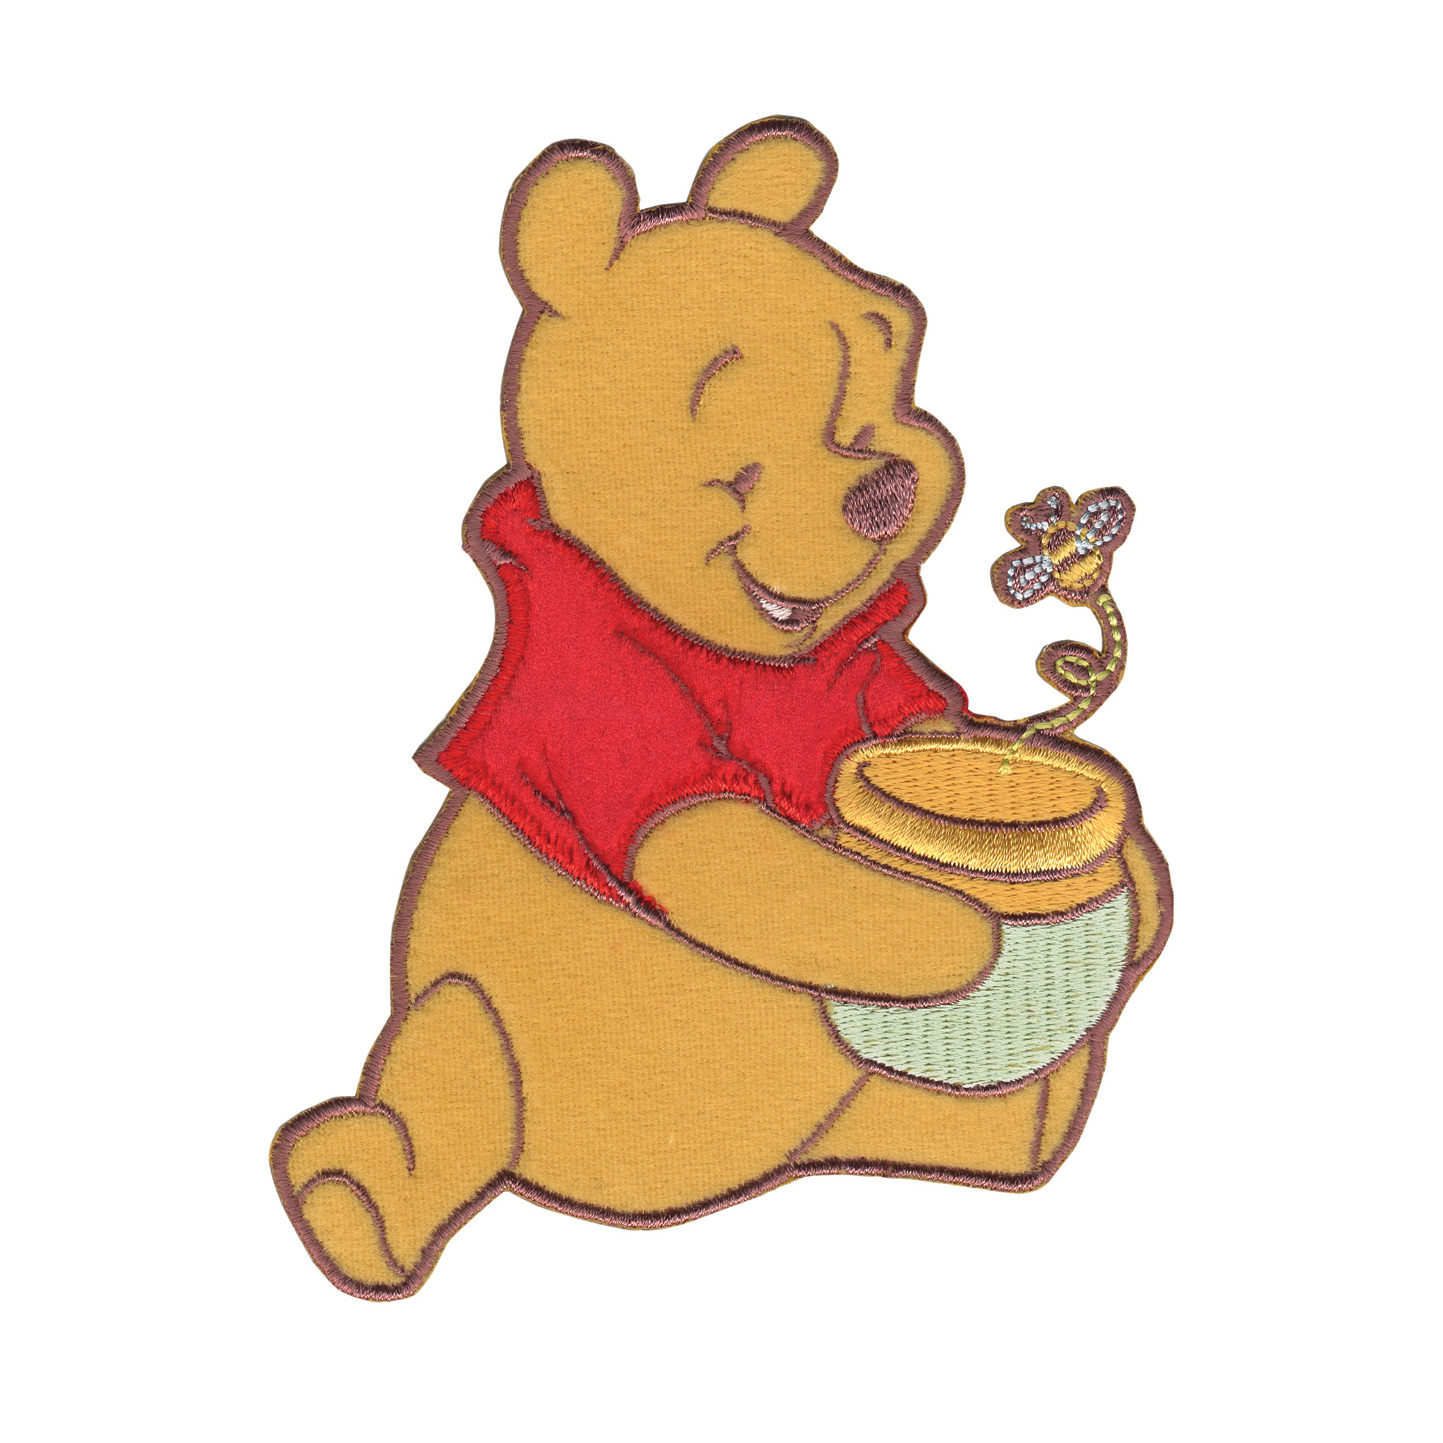 Disney Winnie The Pooh Iron On Applique Pooh Honey Pot & Bee by Notions Marketing in USA